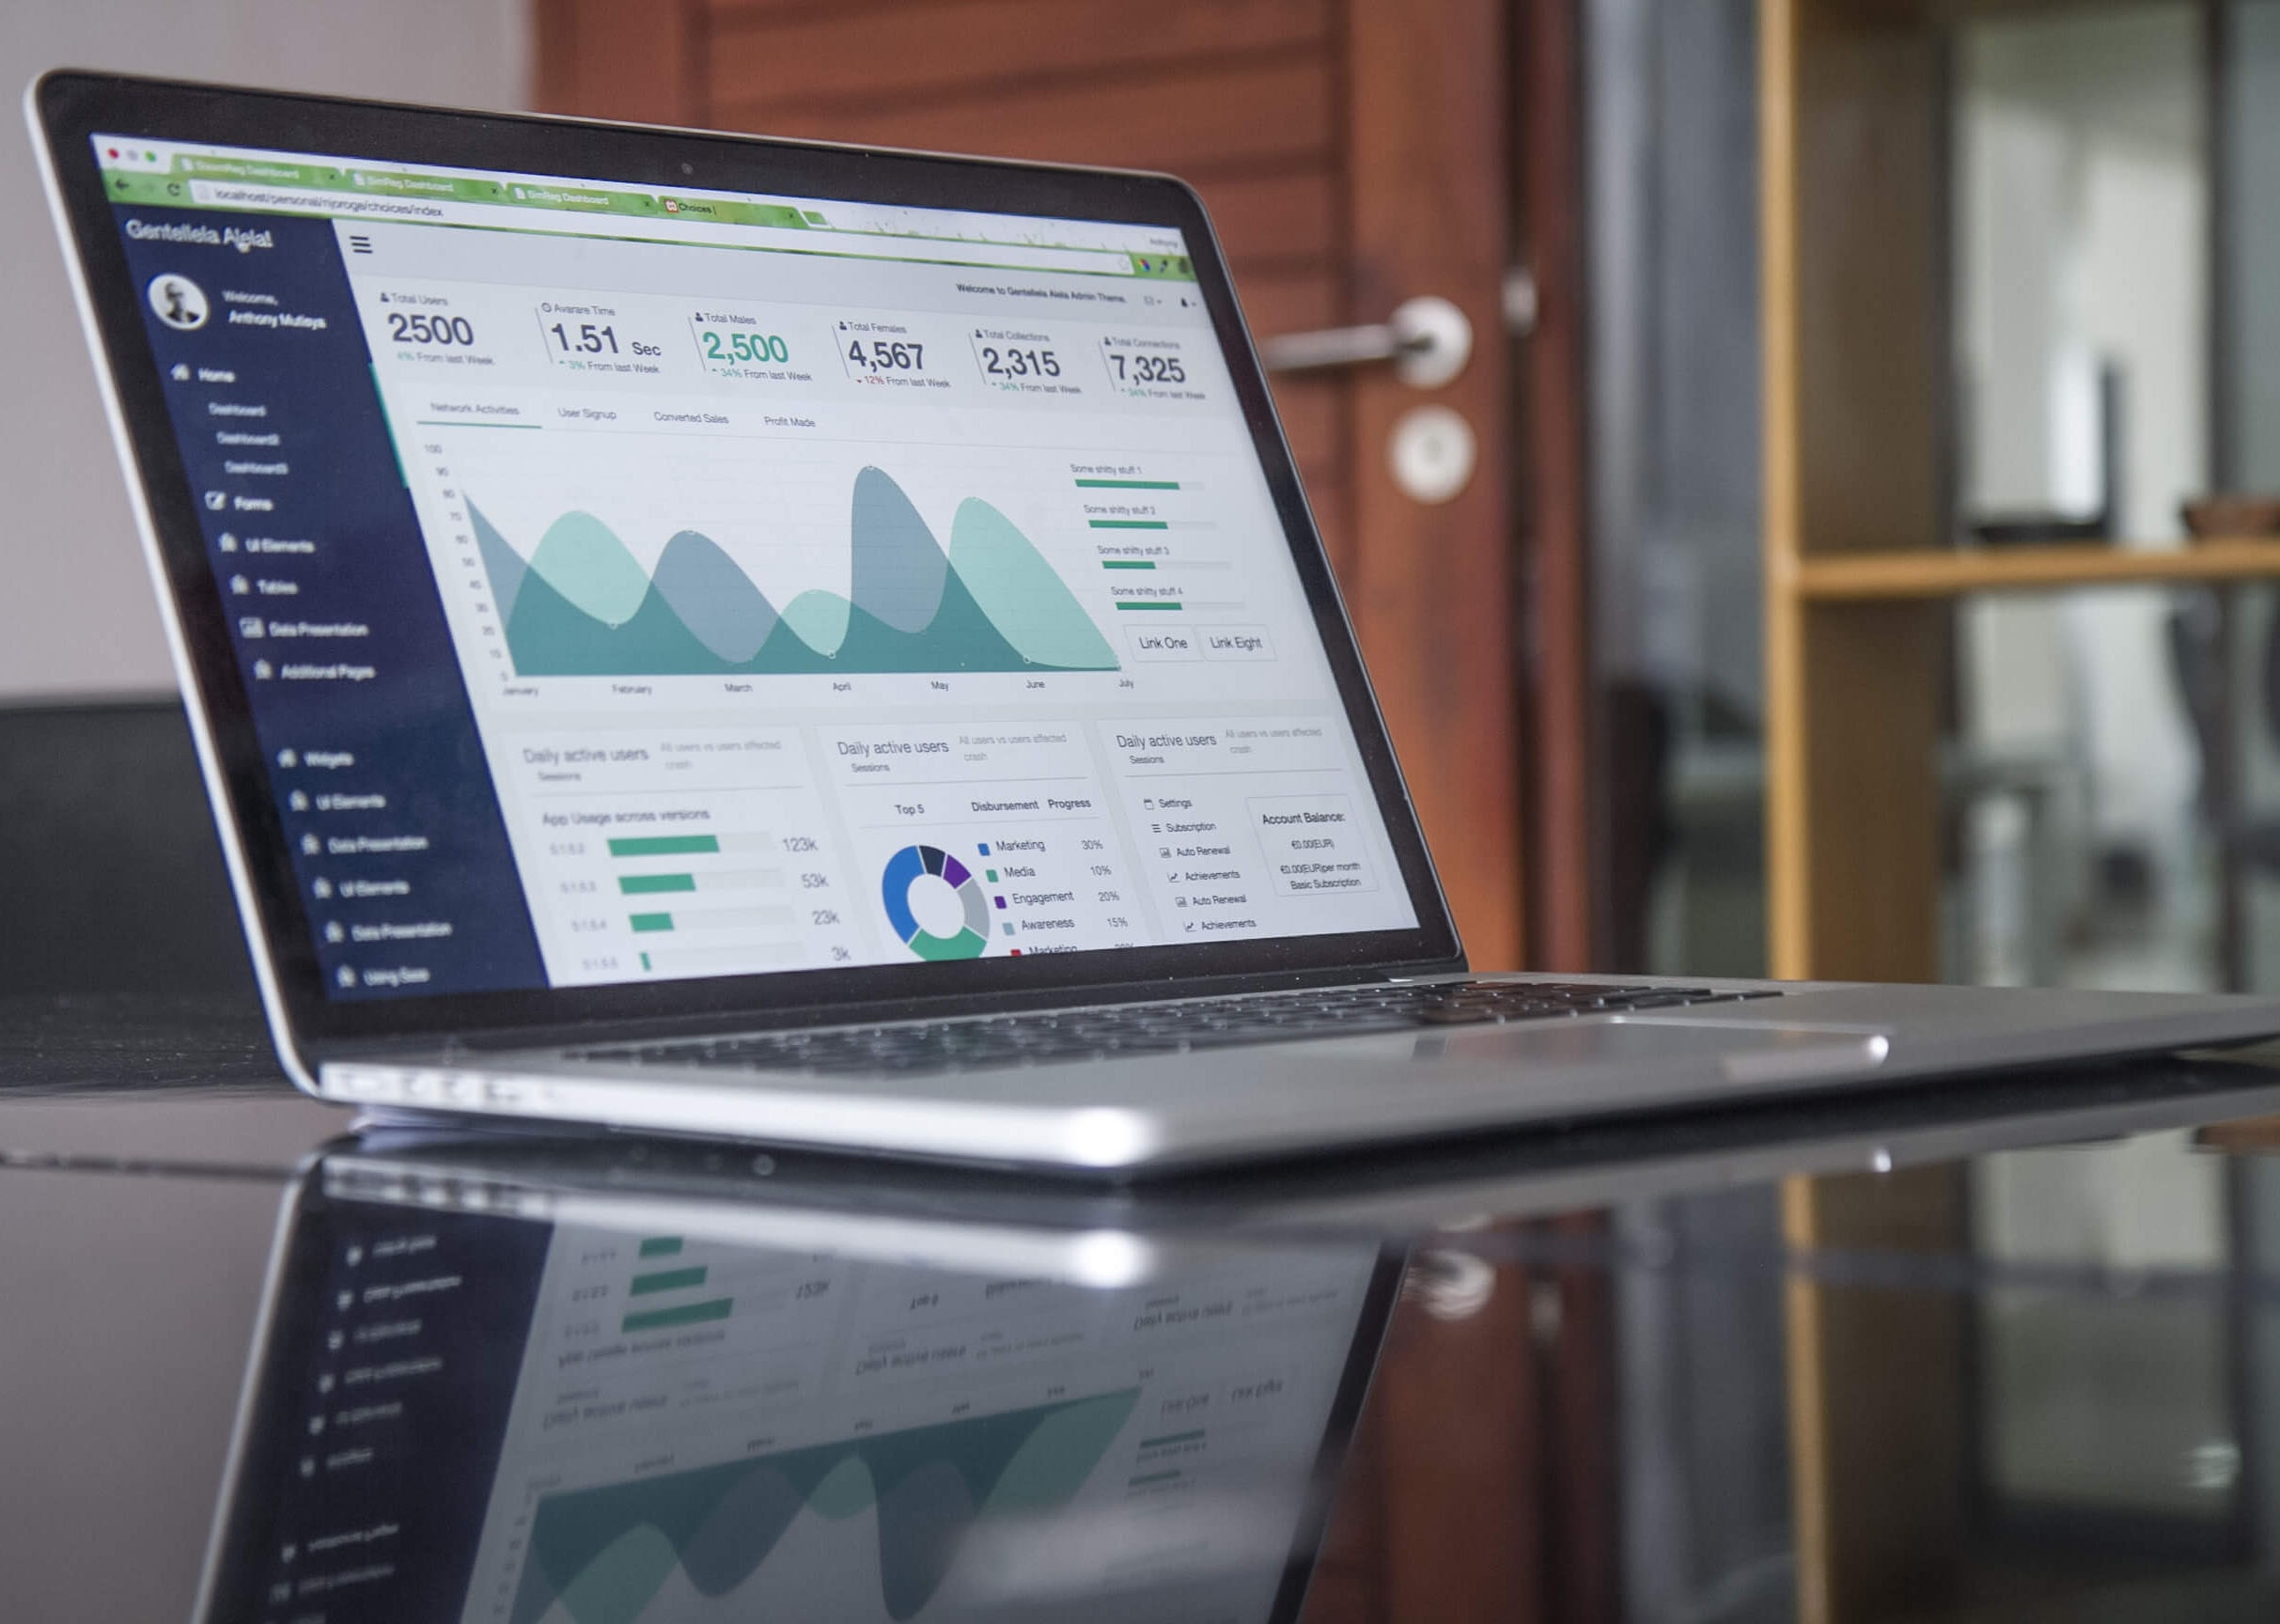 The 3 most important KPIs to track in a rental business